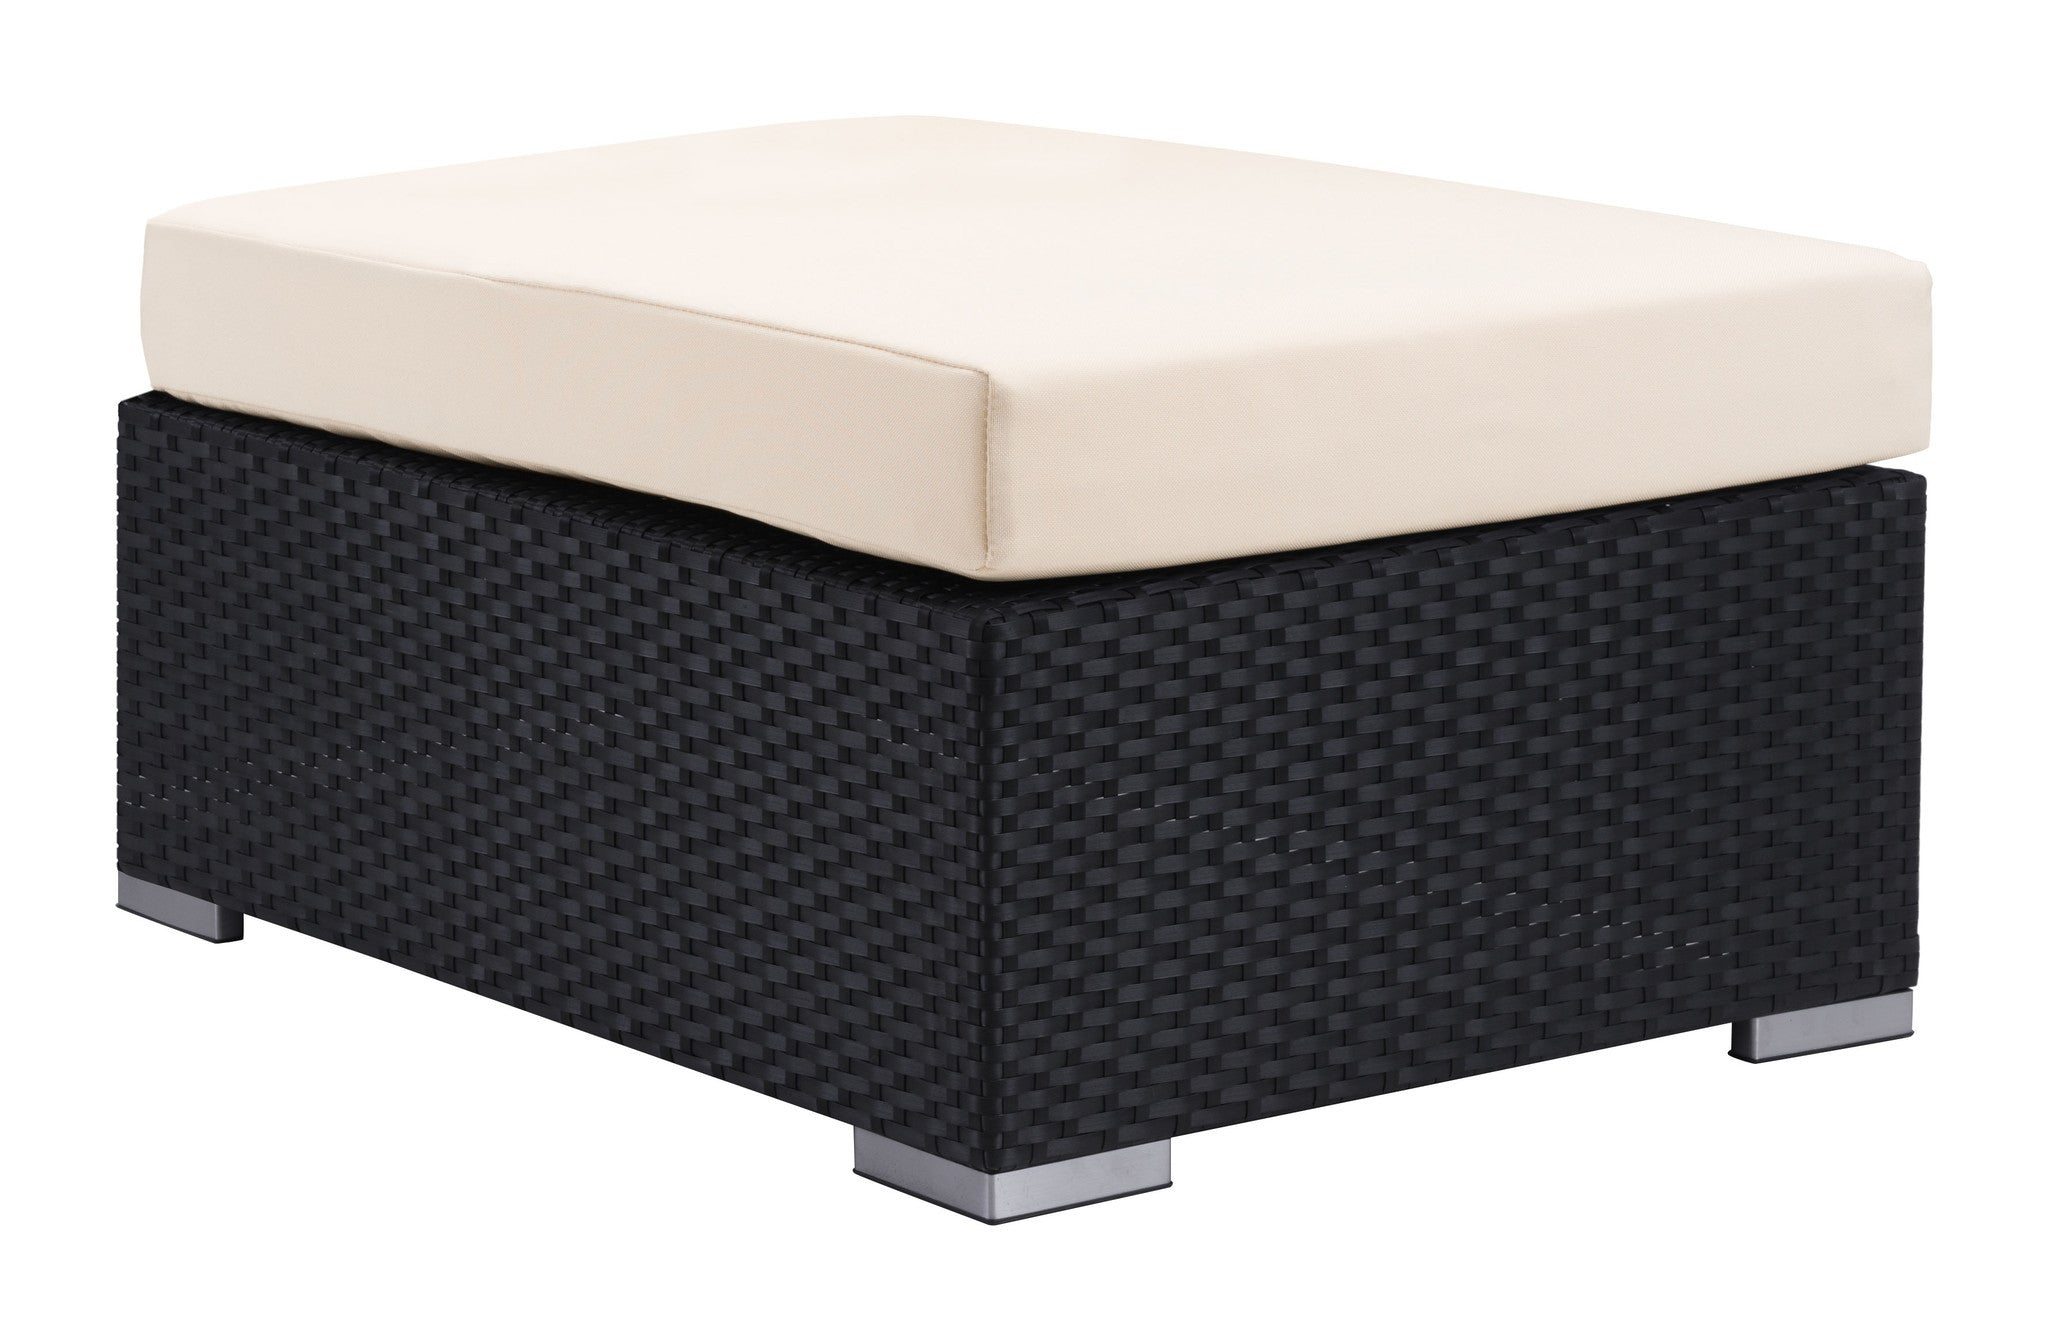 Cartagena Patio Ottoman In Espresso Synthetic Weave With Sunproof Fabric  Cushion Outdoor Ottomans Alan ...